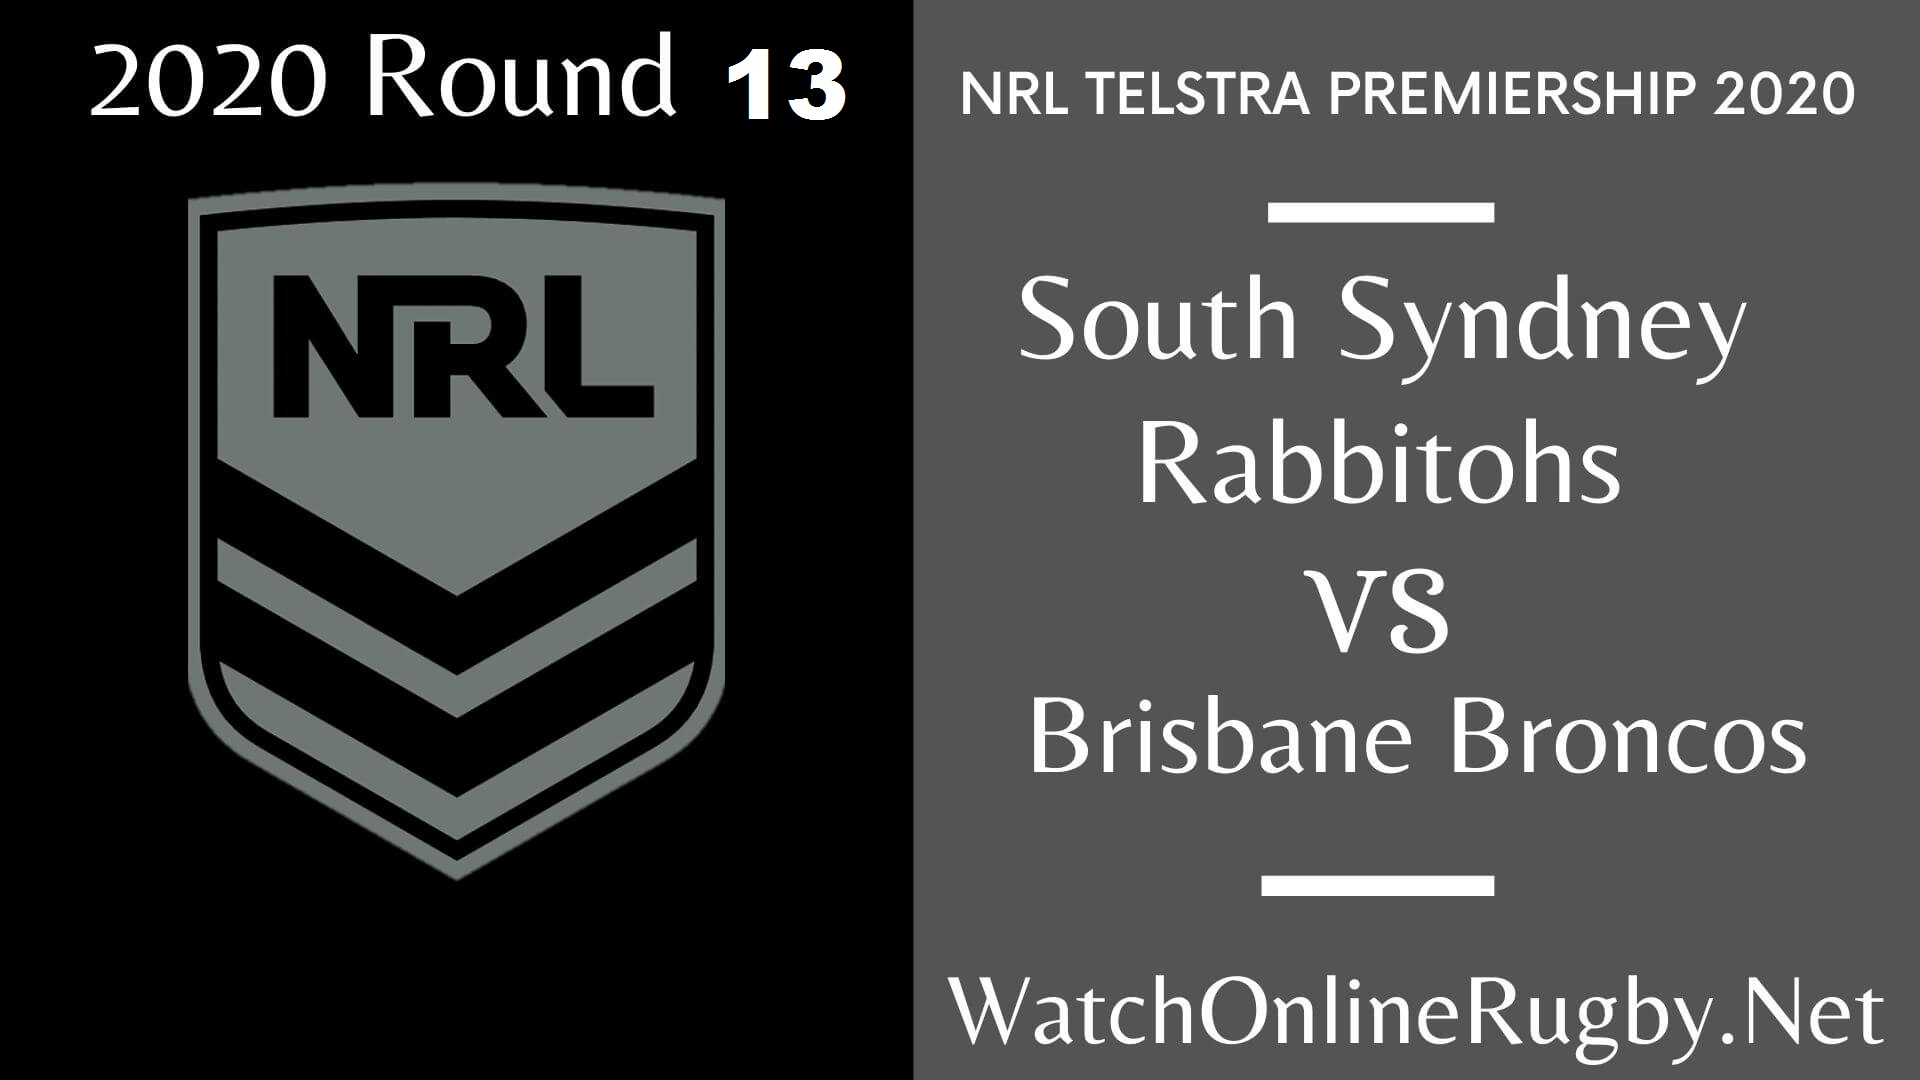 Sydney Rabbitohs Vs Brisbane Broncos Highlights 2020 Round 13 Nrl Rugby